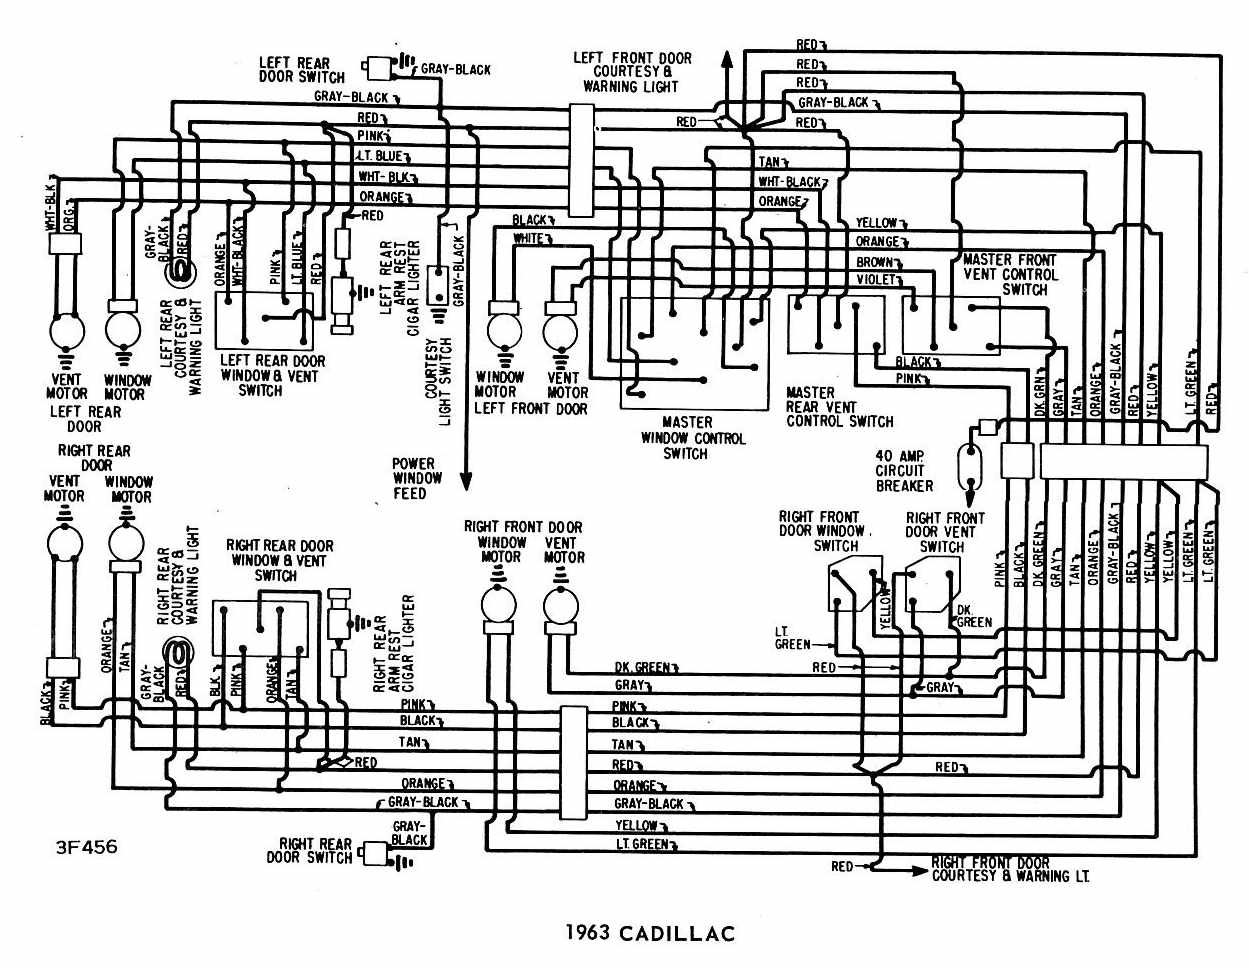 Windows Wiring Diagram Of General Motors Tailgate Typical furthermore Cadillac Eldorado Brougham Wiring Diagram further Cadillac Windows Wiring Diagram likewise Radio Antenna Wiring Diagram Of Bmw I Convertible furthermore Windows Wiring Diagram Of General Motors All Model. on 1957 cadillac power windows wiring diagram